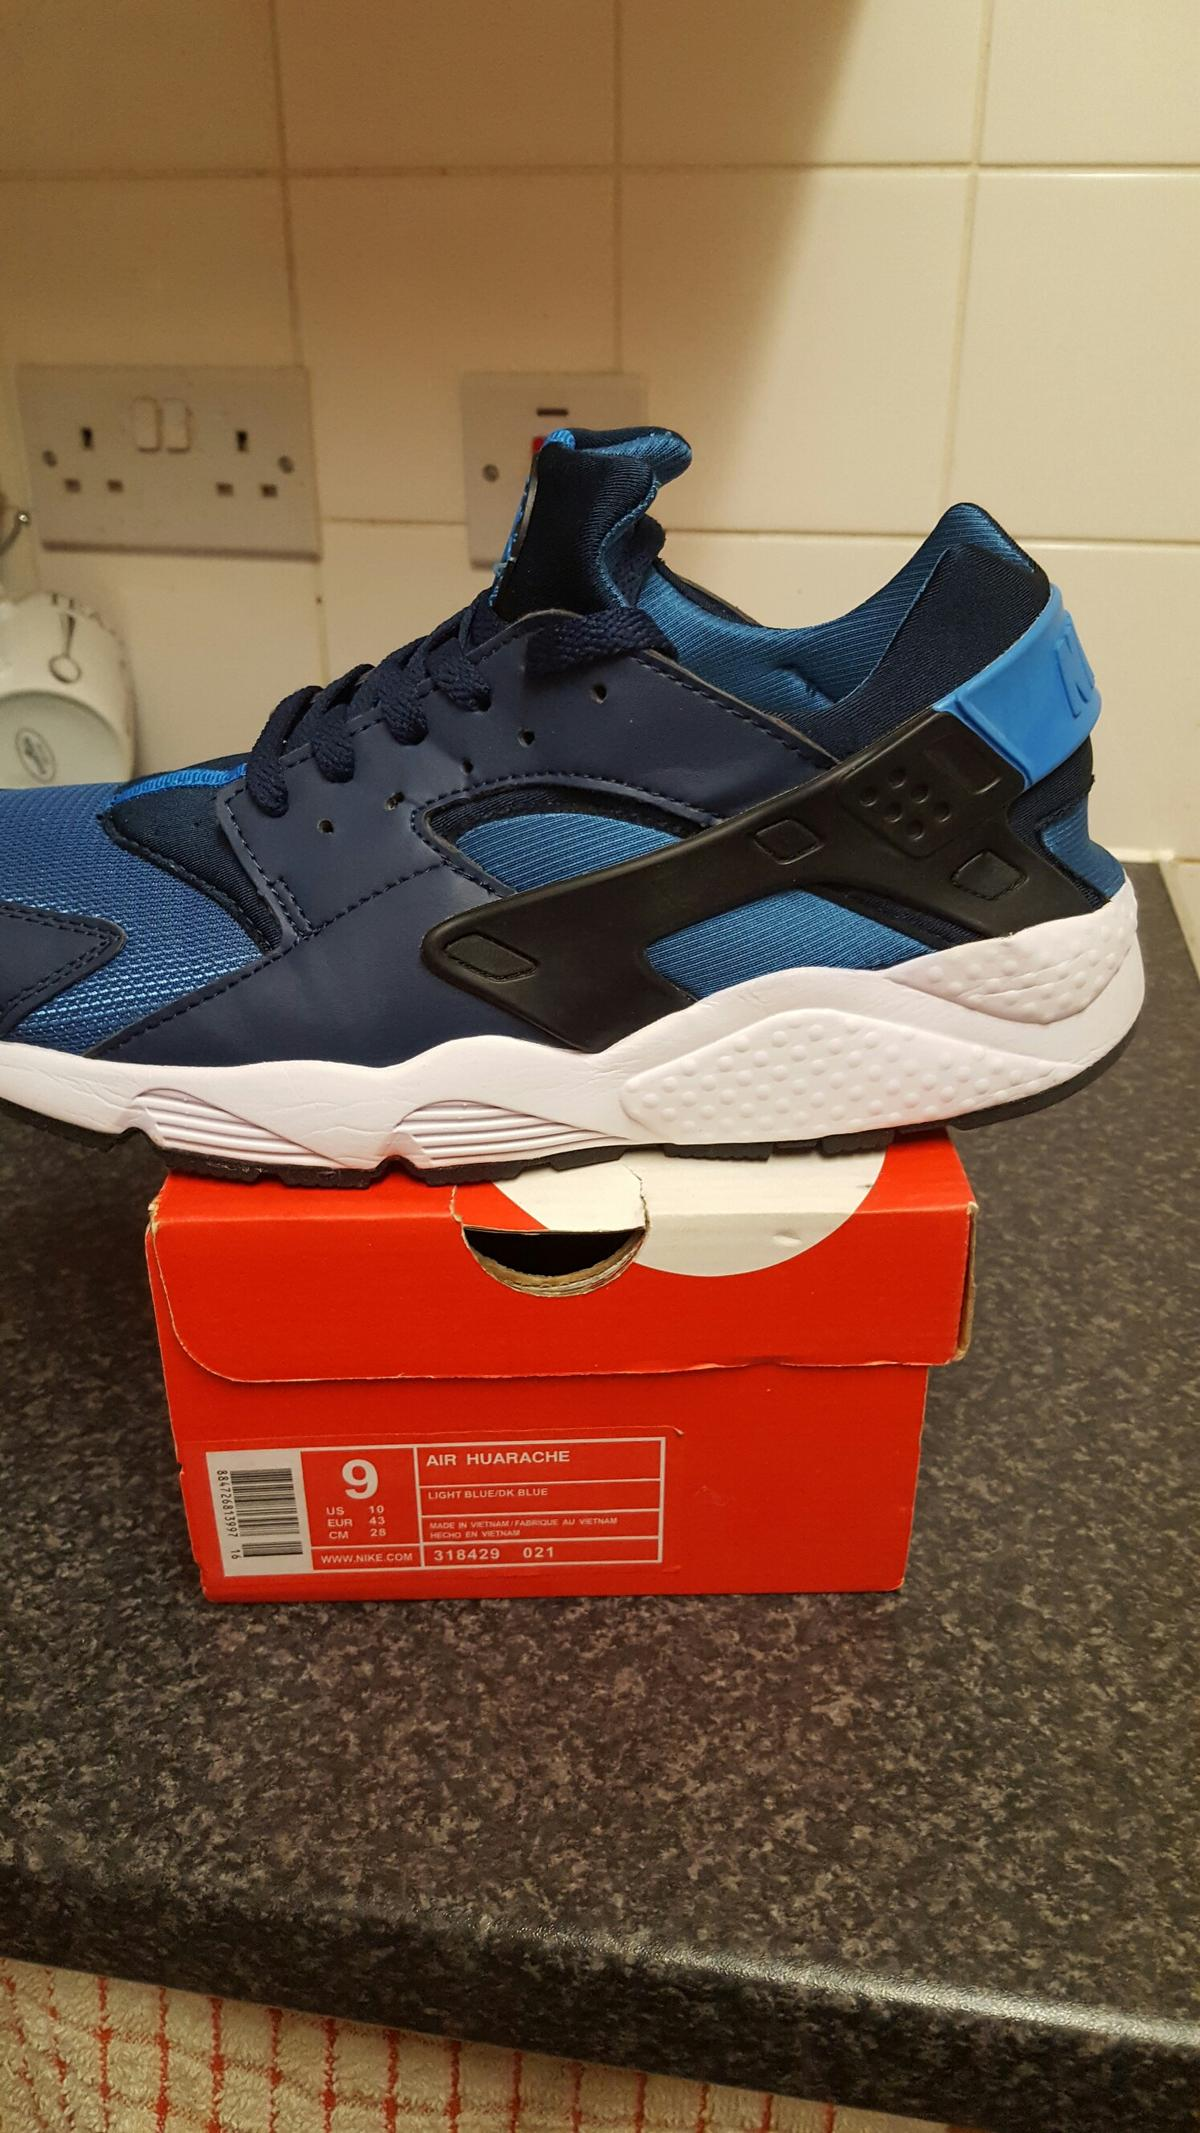 05e9af483e46 Huriches size 9 (brand new ) in E3 London for £50.00 for sale - Shpock